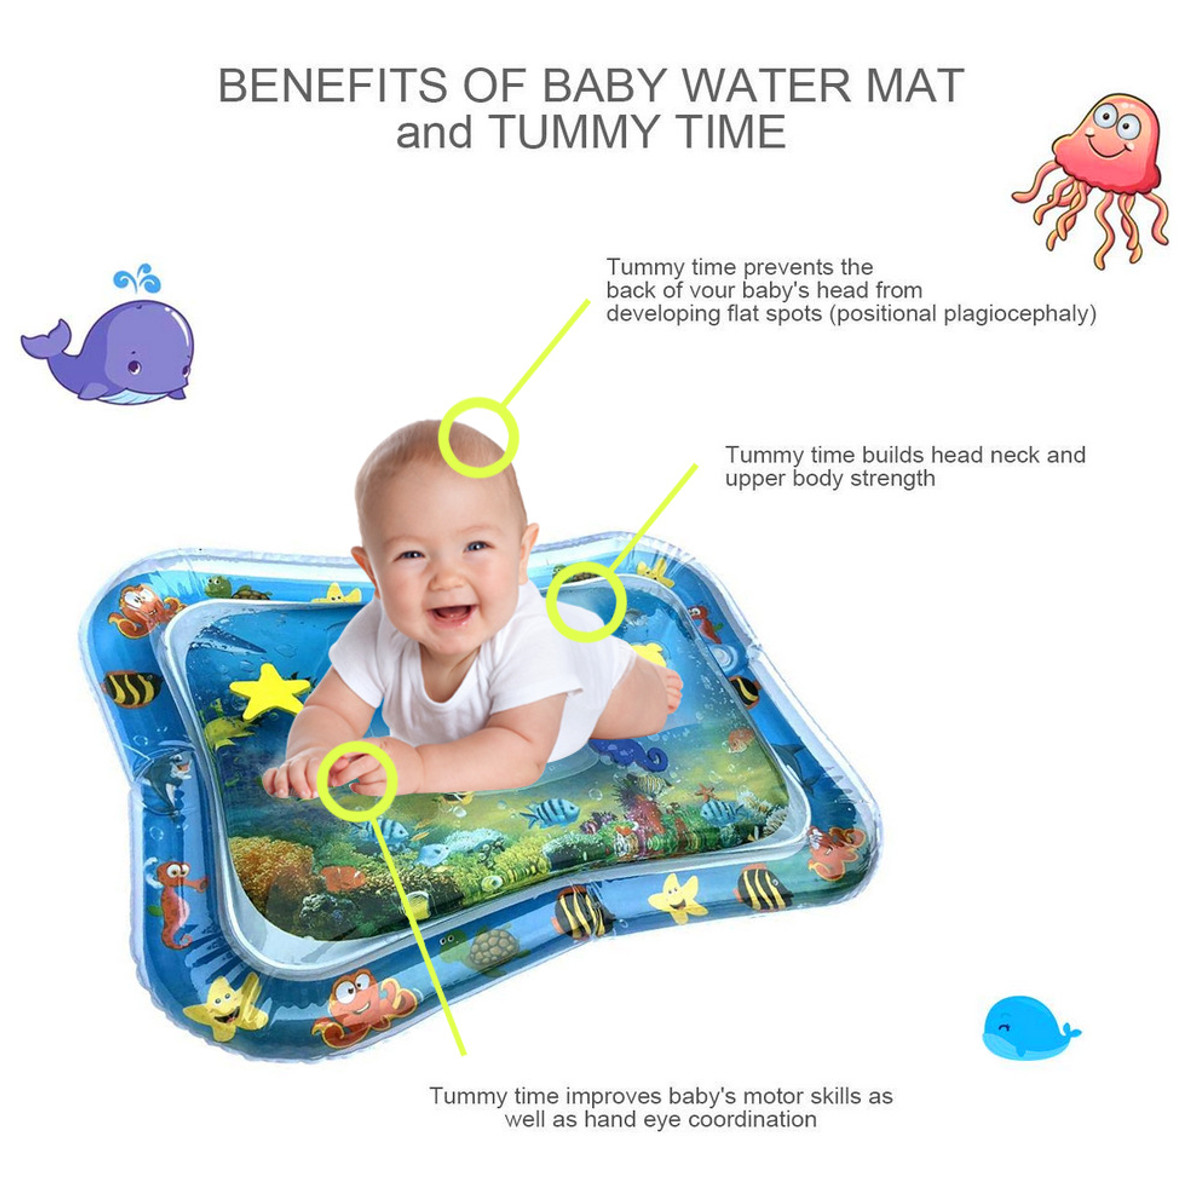 66x50cm Inflatable Baby Water Play Mat Infants Swimming Air Mattress Toddlers Fun Tummy Time Activity Tools